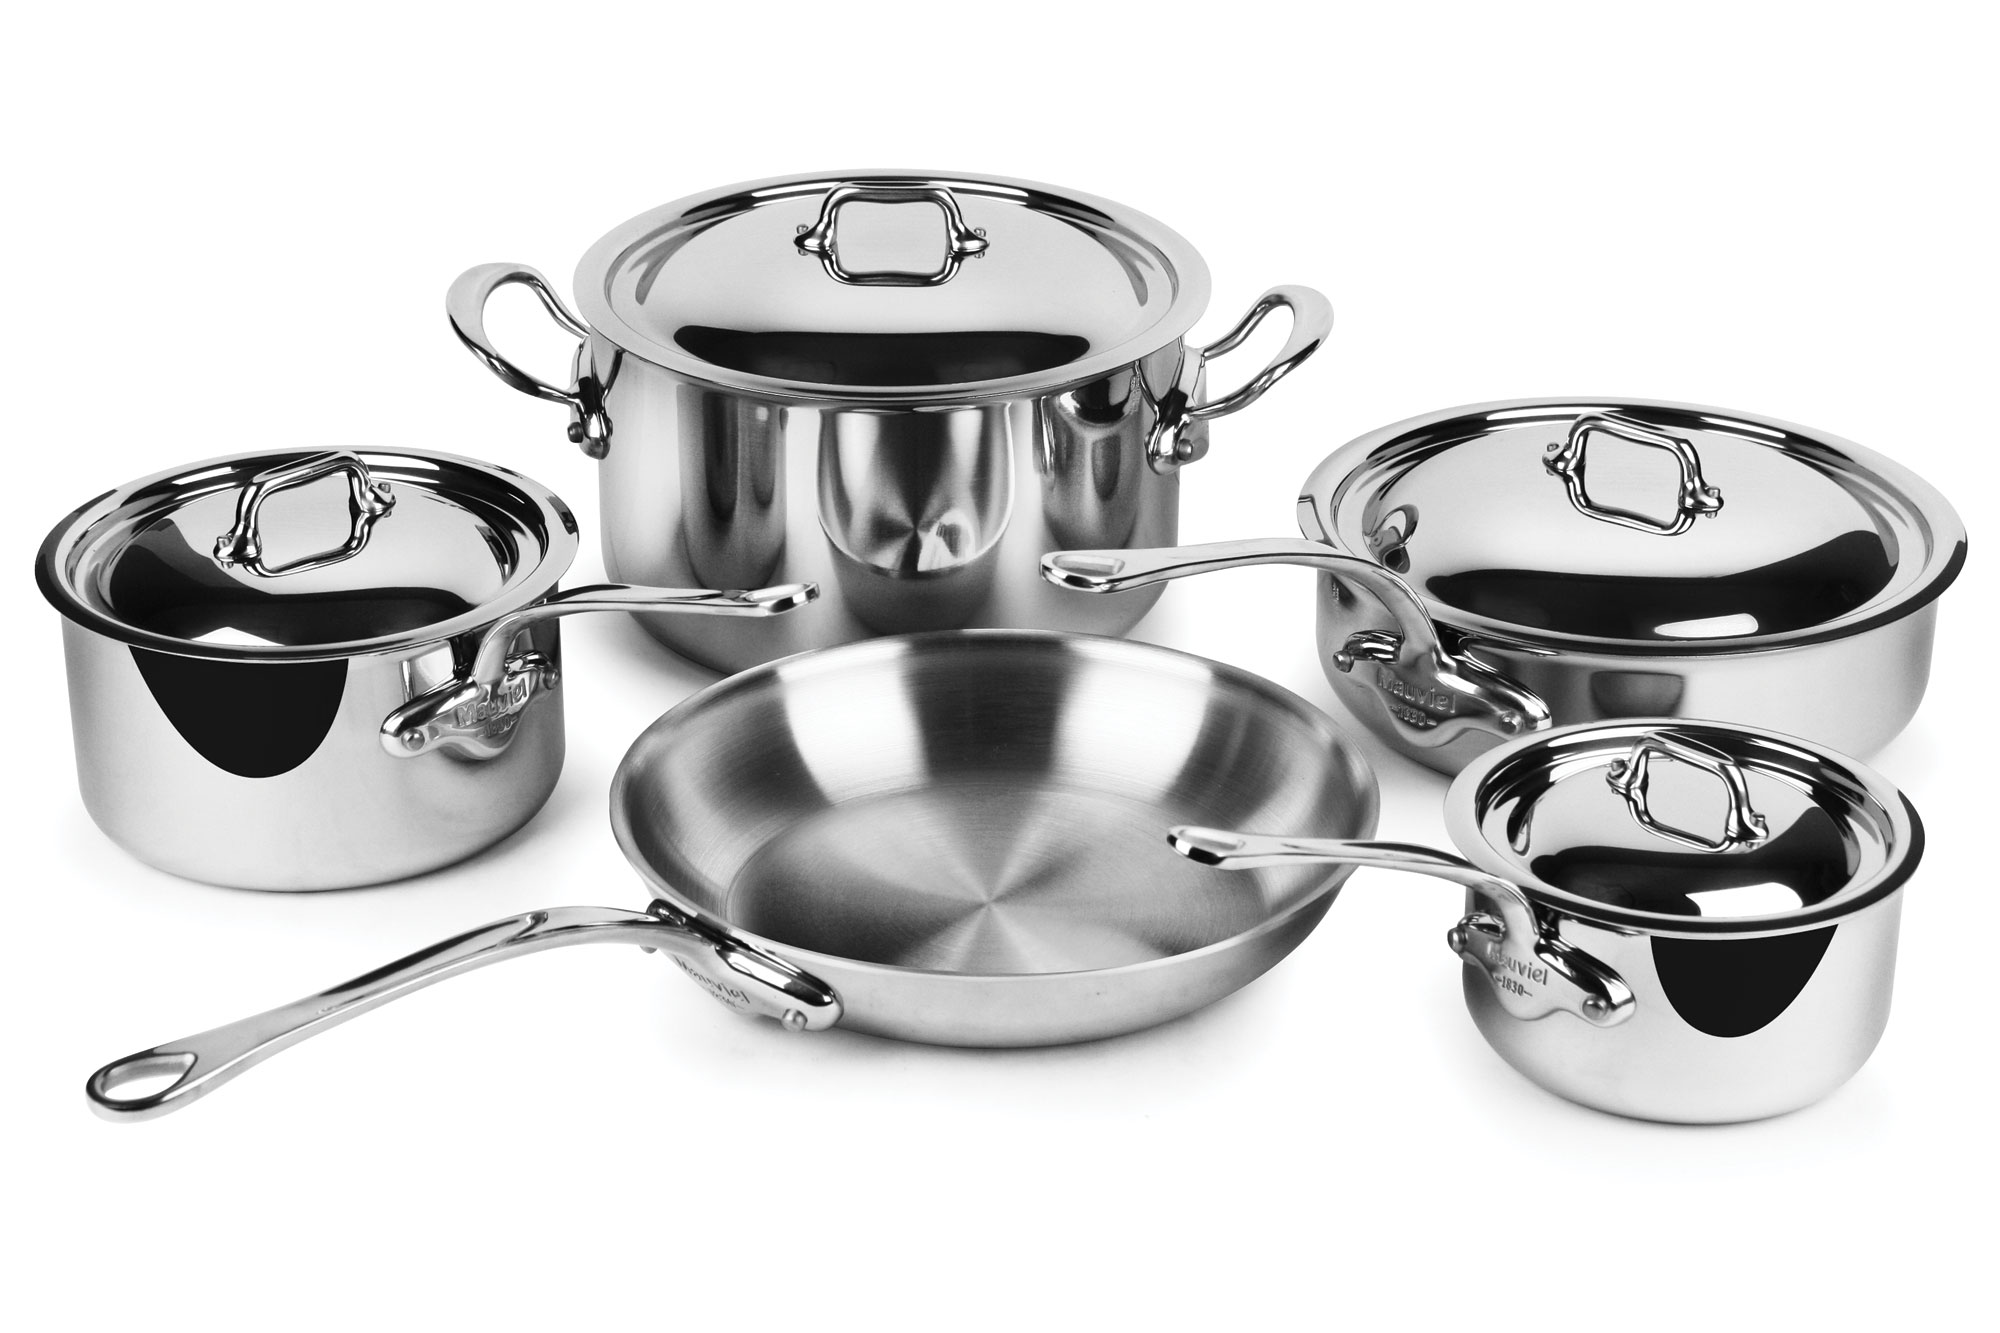 Mauviel Stainless Steel Cookware Set M Cook 9 Piece